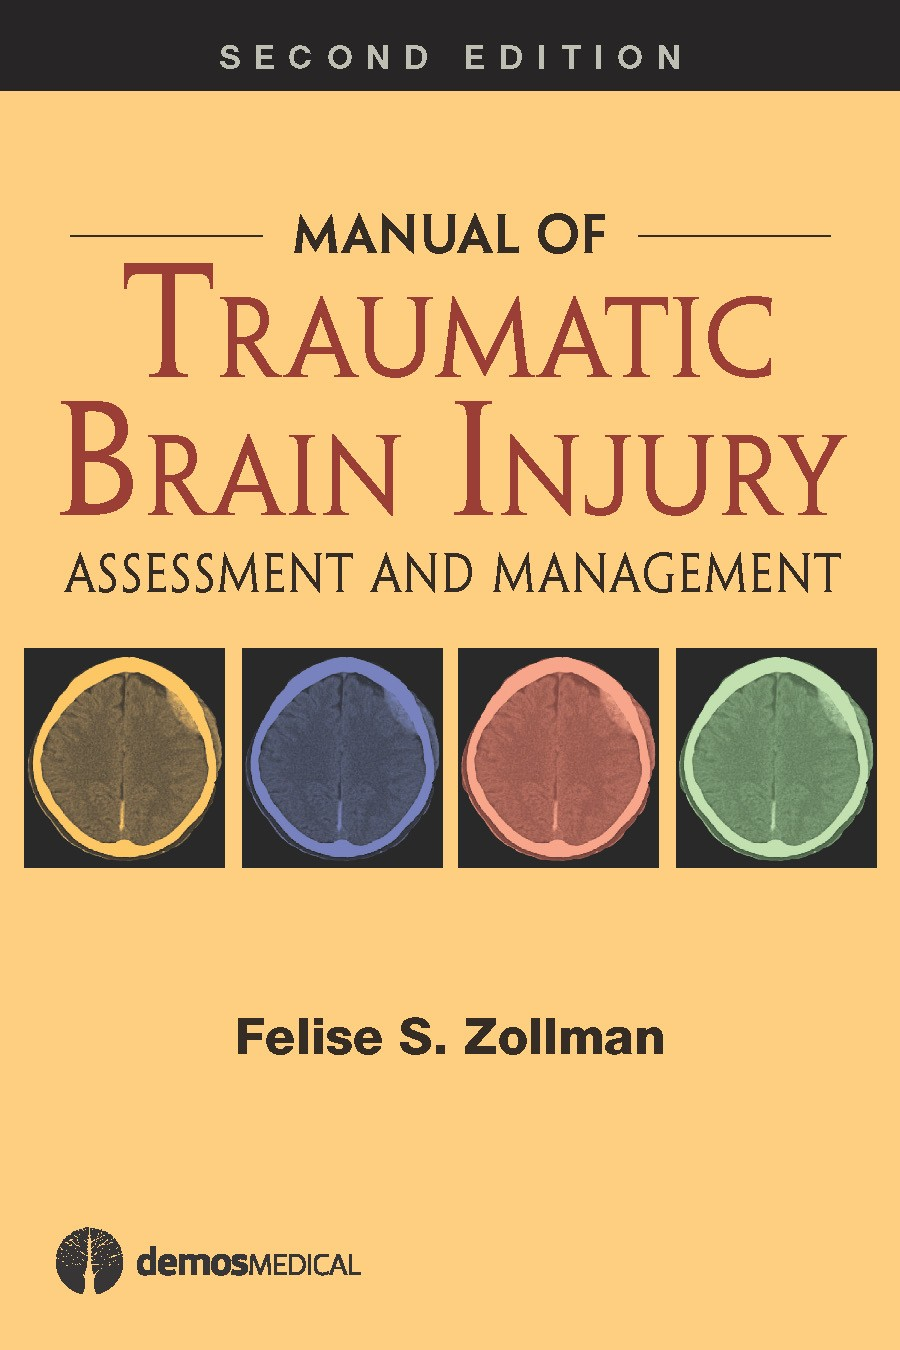 Manual of Traumatic Brain Injury, 2nd ed.- Assessment & Management